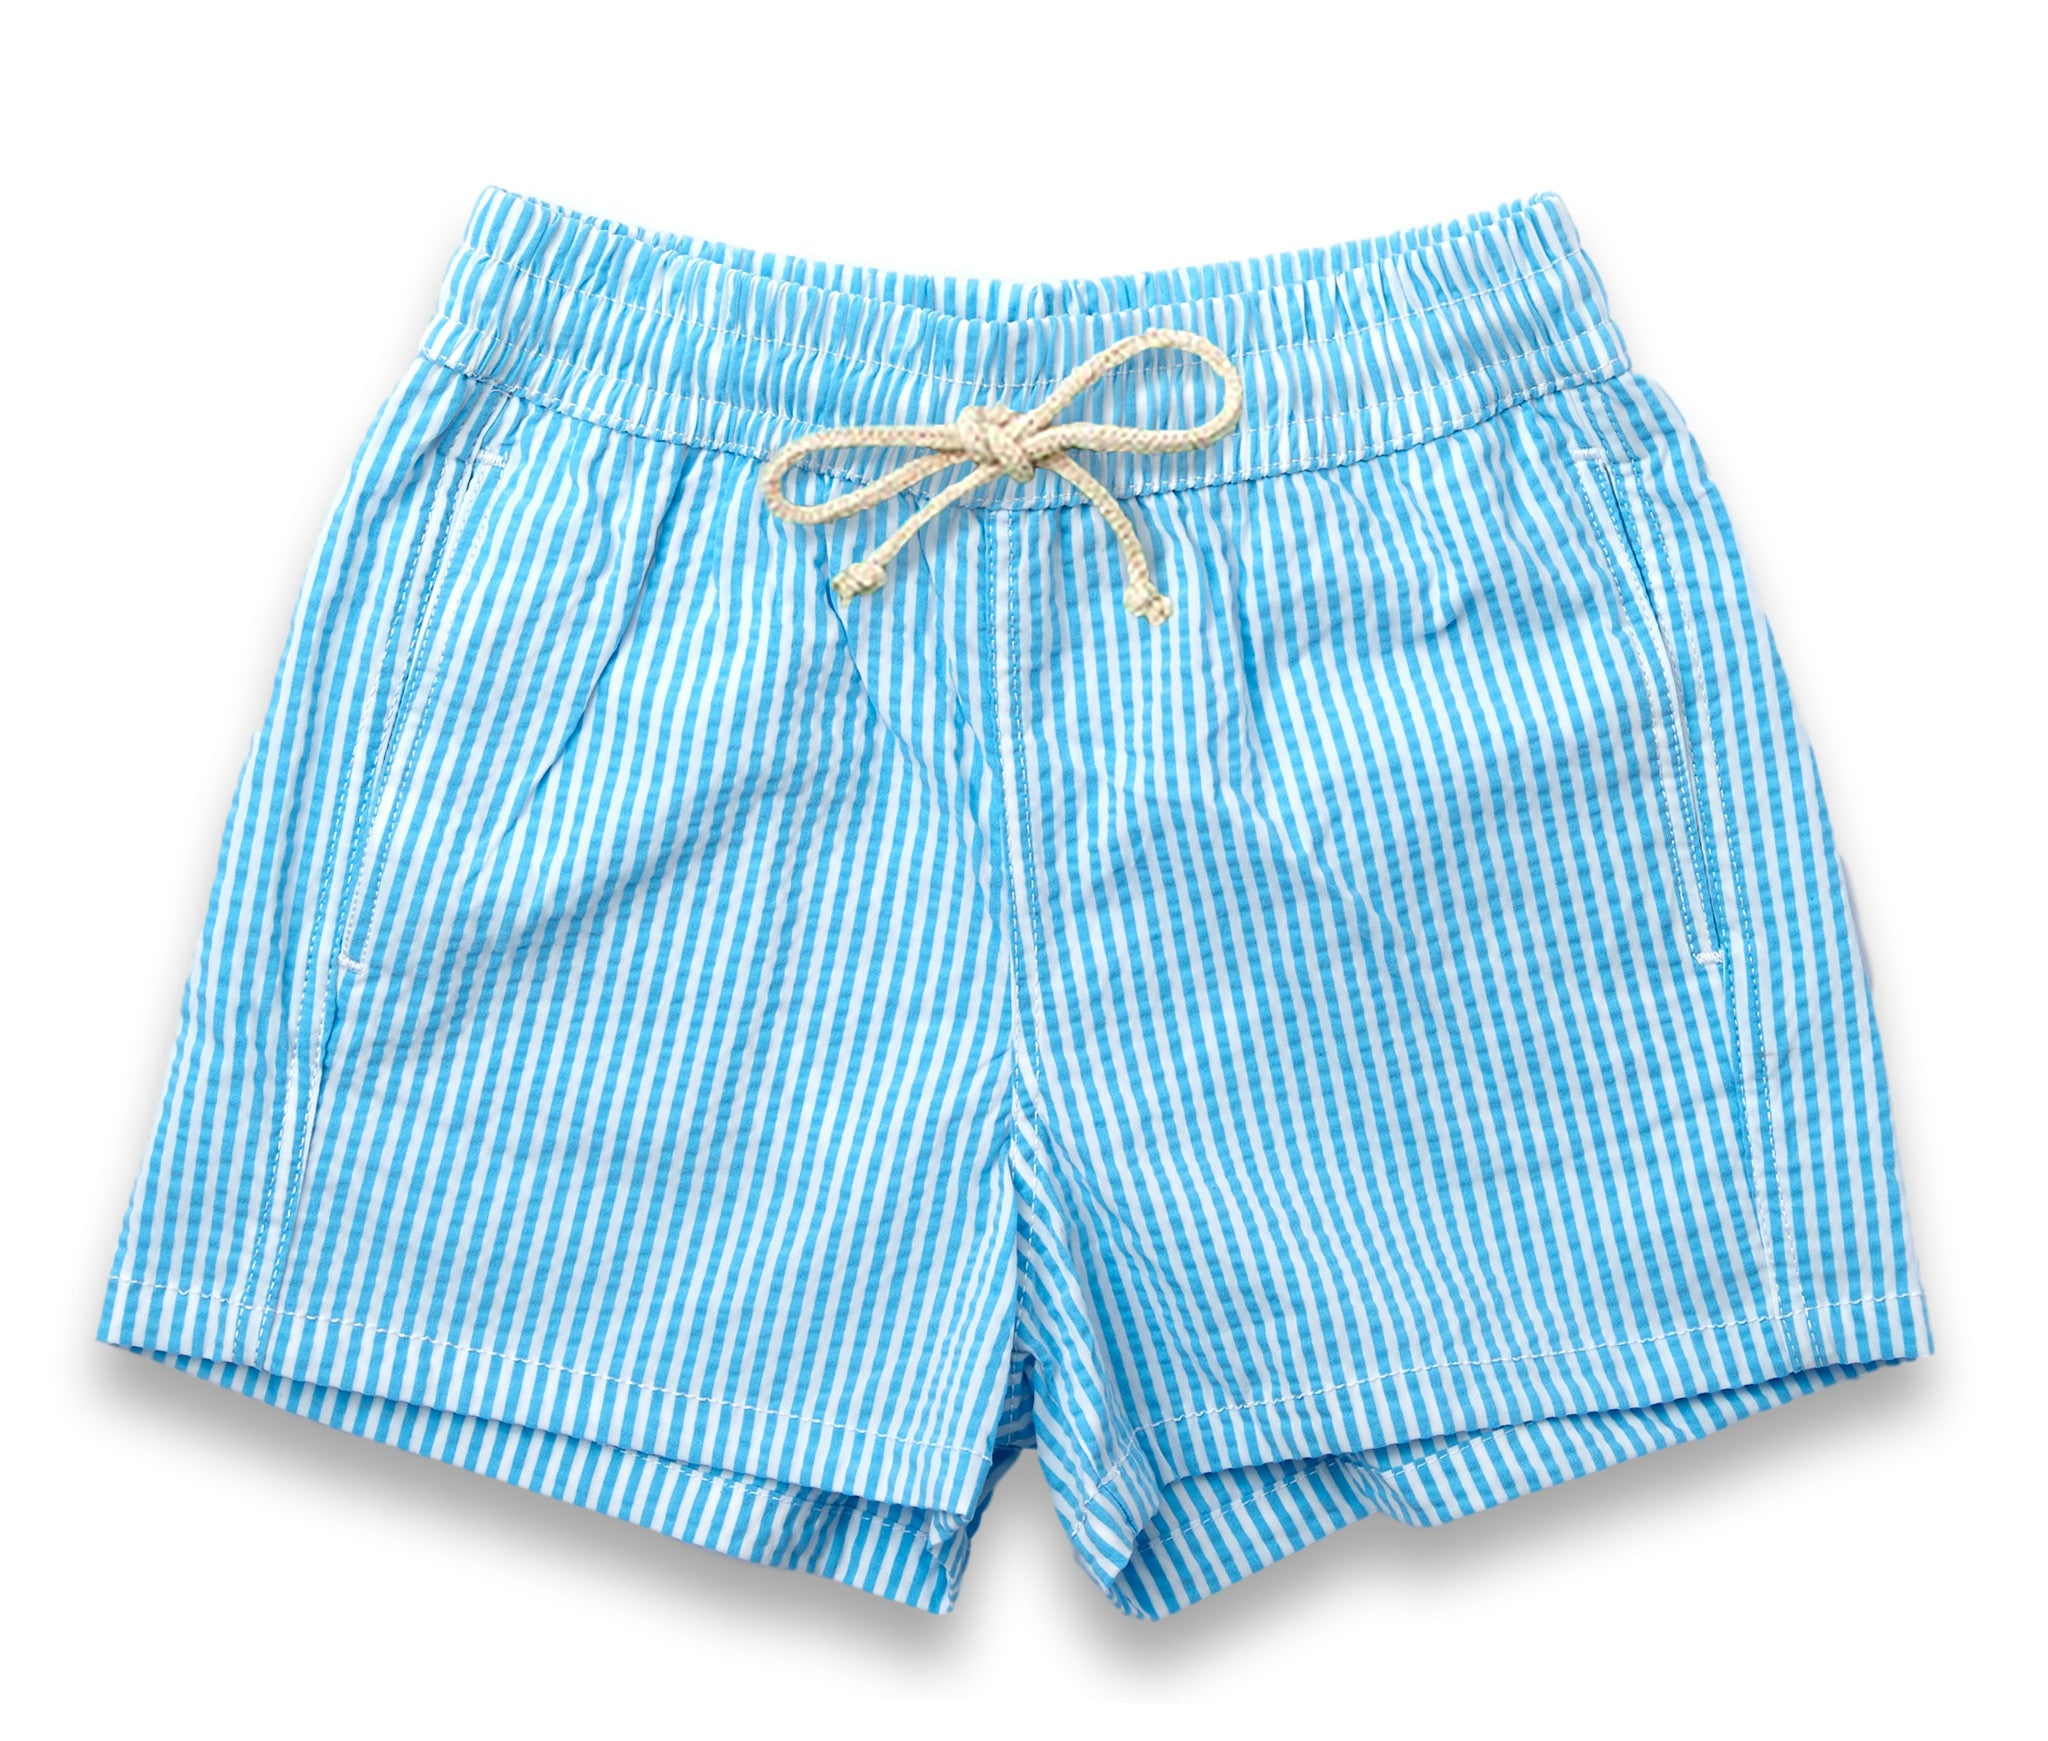 Mens Swim Trunks // Sky Blue Stripe